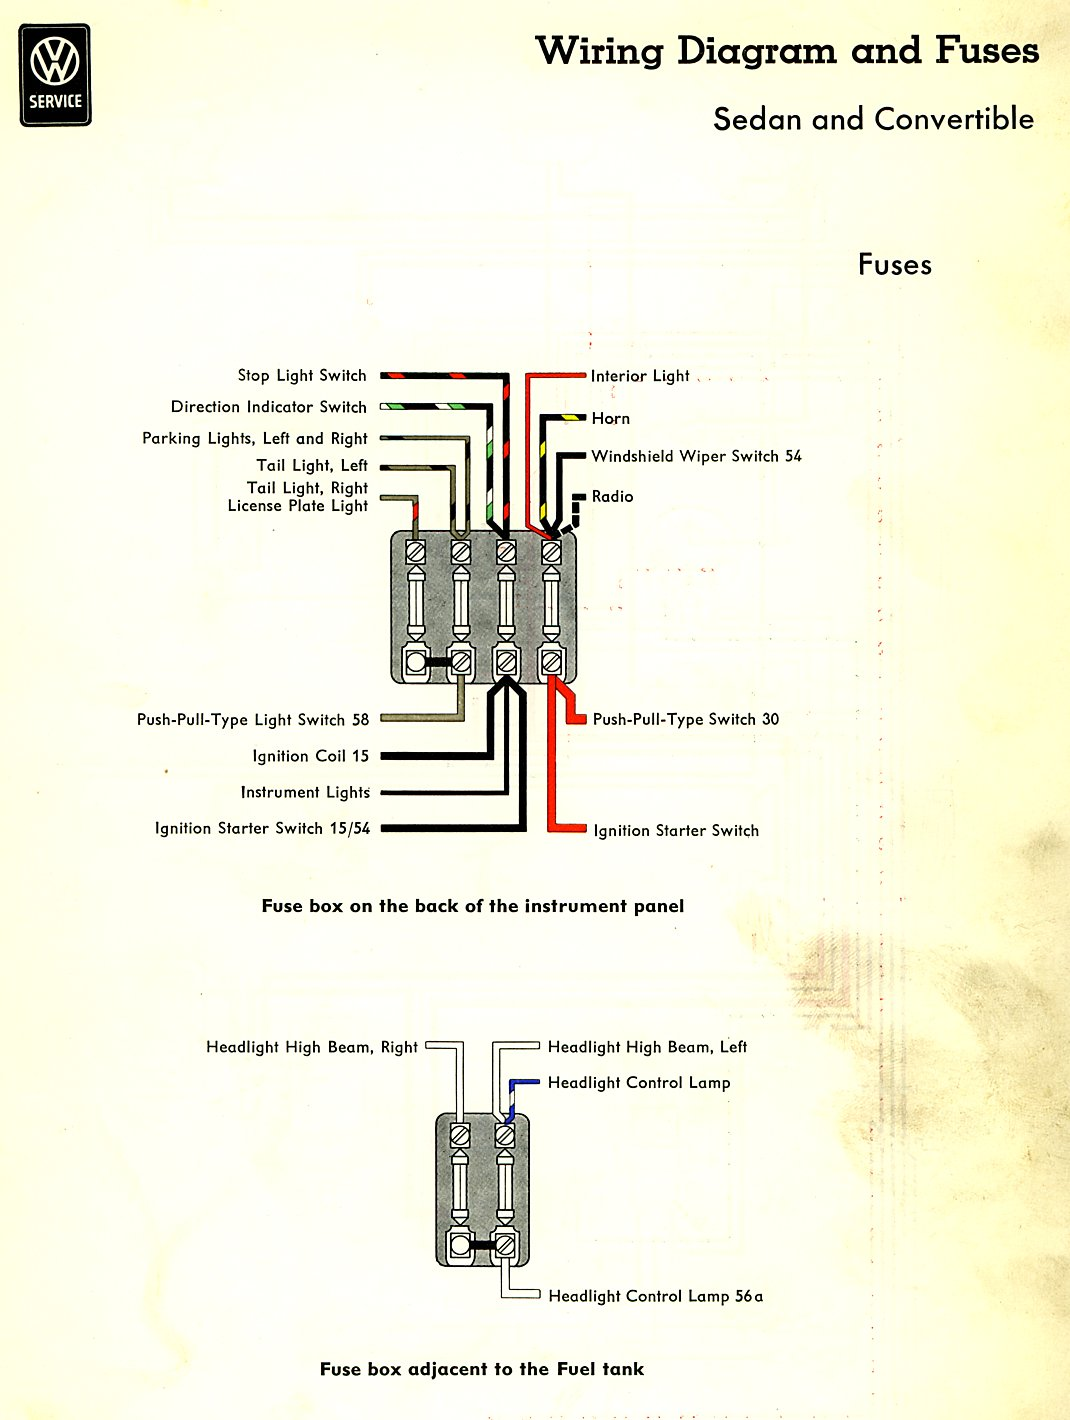 thesamba com type 1 wiring diagrams 1975 corvette fuse box wiring diagrams